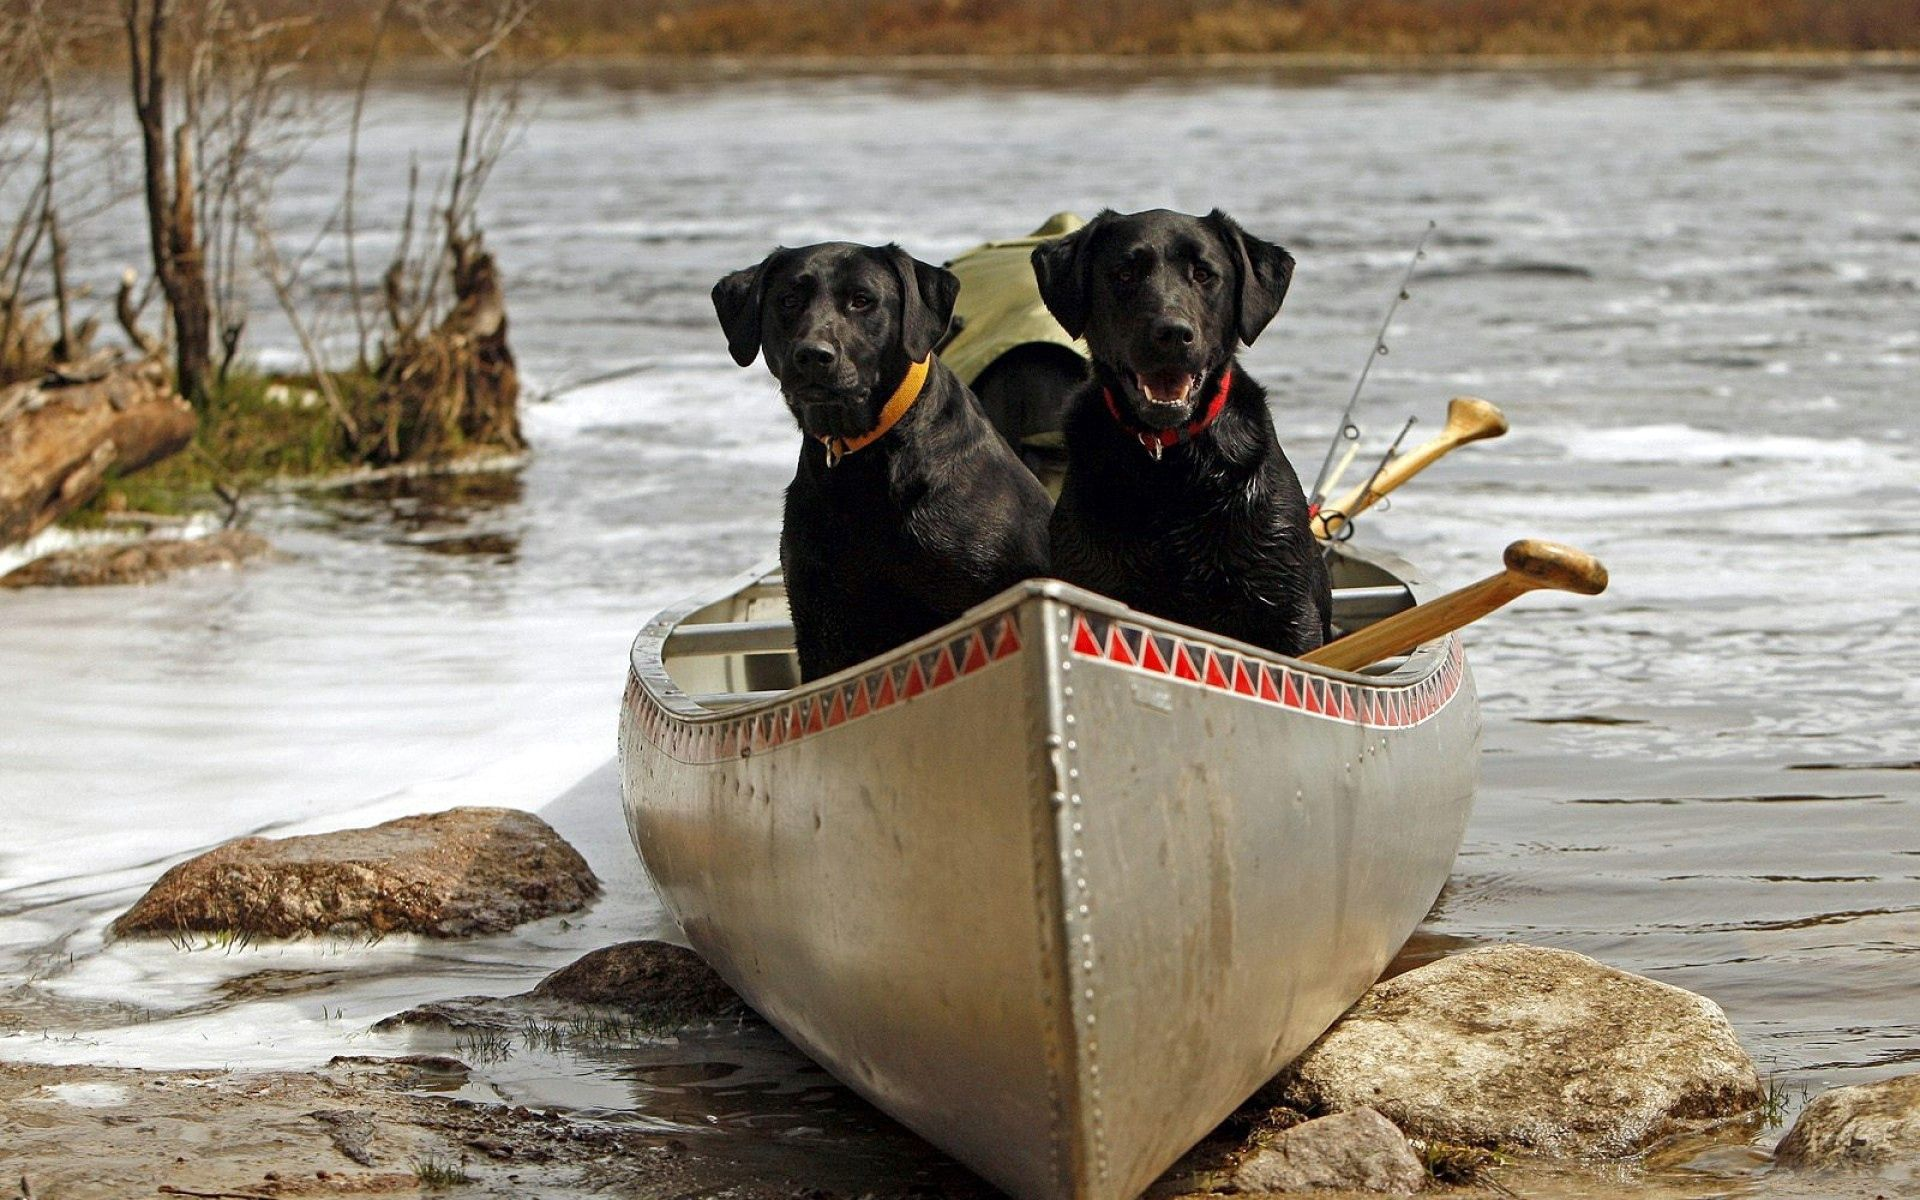 70856 download wallpaper Animals, Dogs, Couple, Pair, Boat, Stones, Rivers screensavers and pictures for free